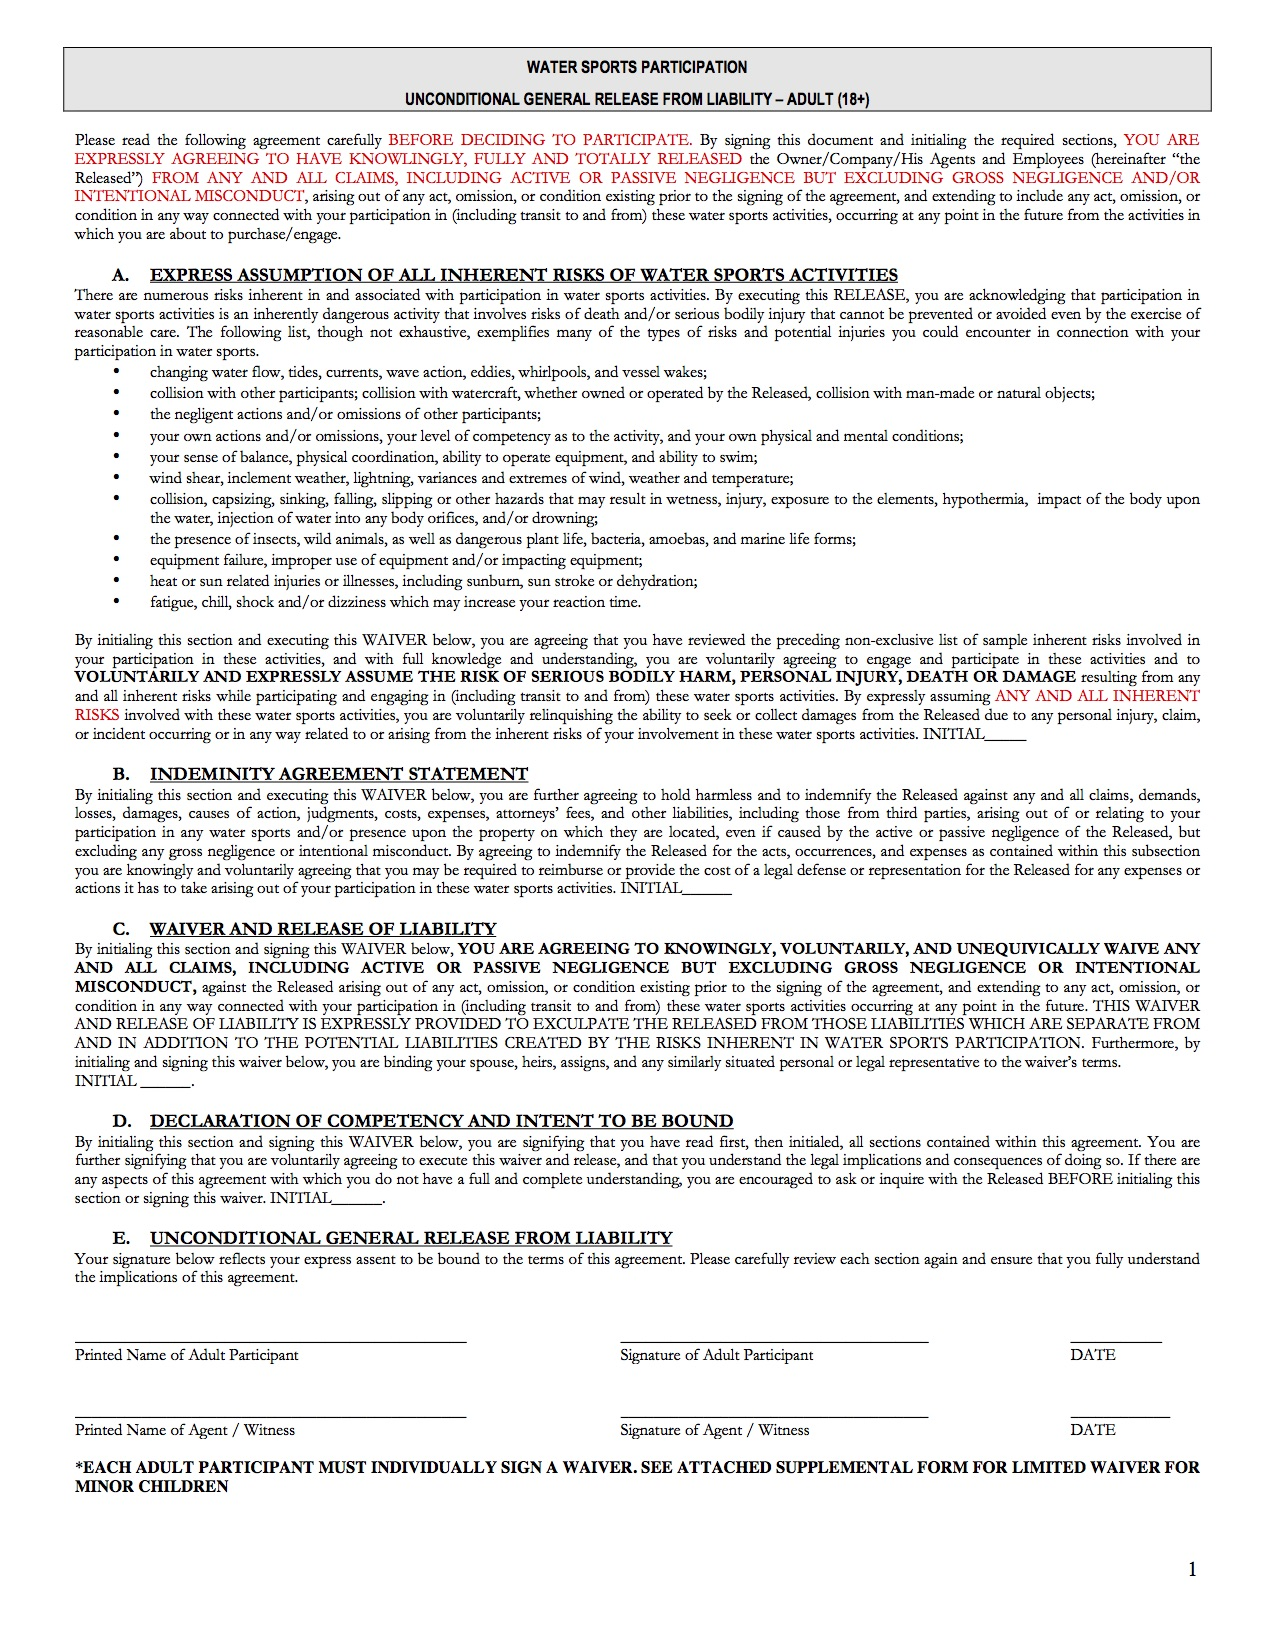 O'Town Watersports Participation Waiver